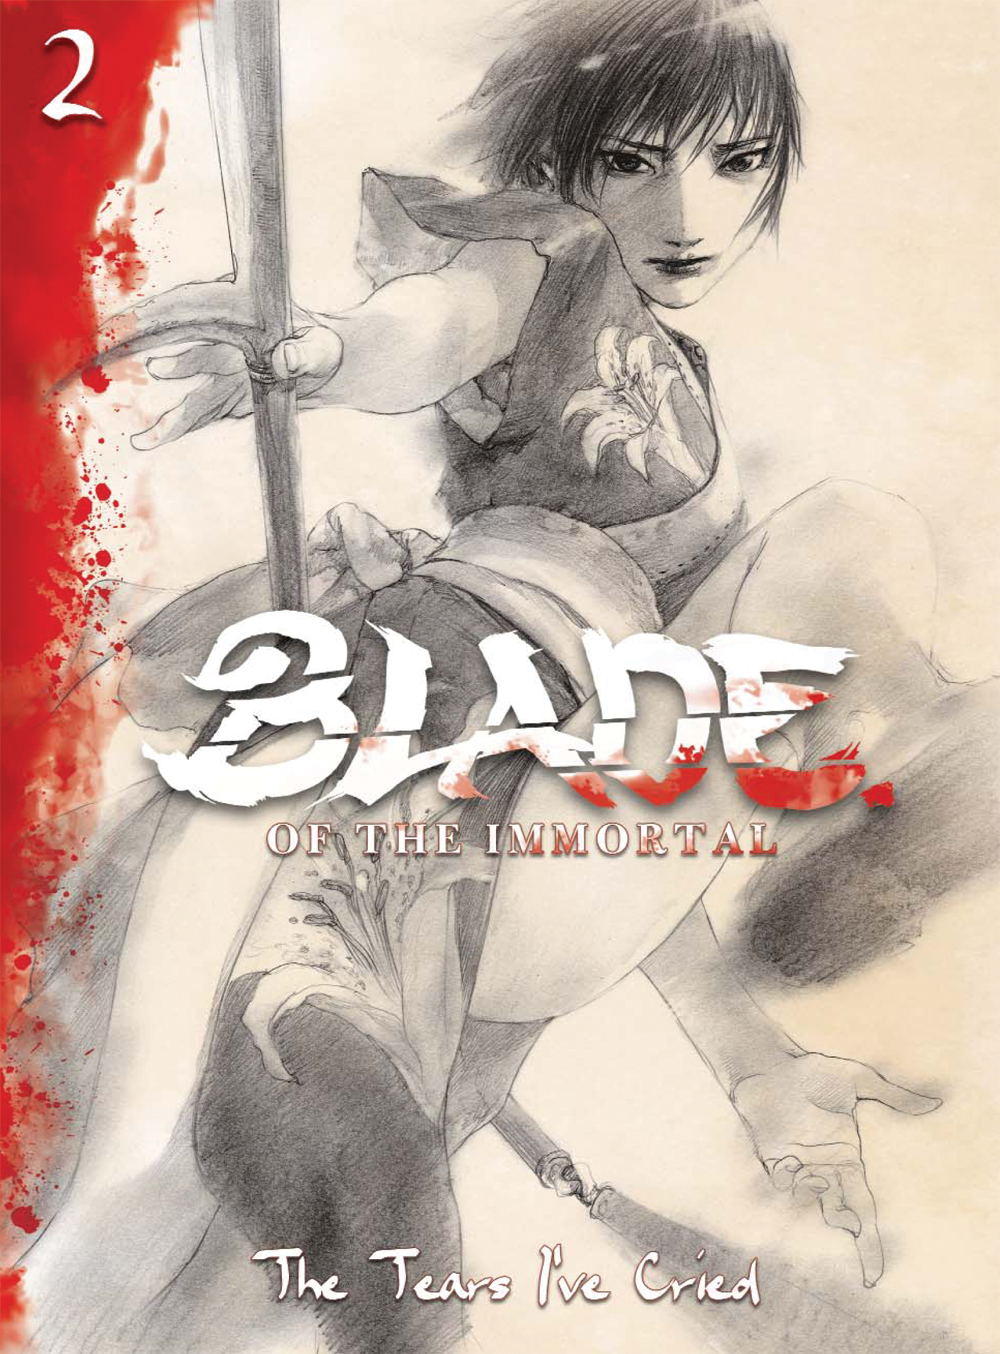 Blade of the Immortal DVD volume 2